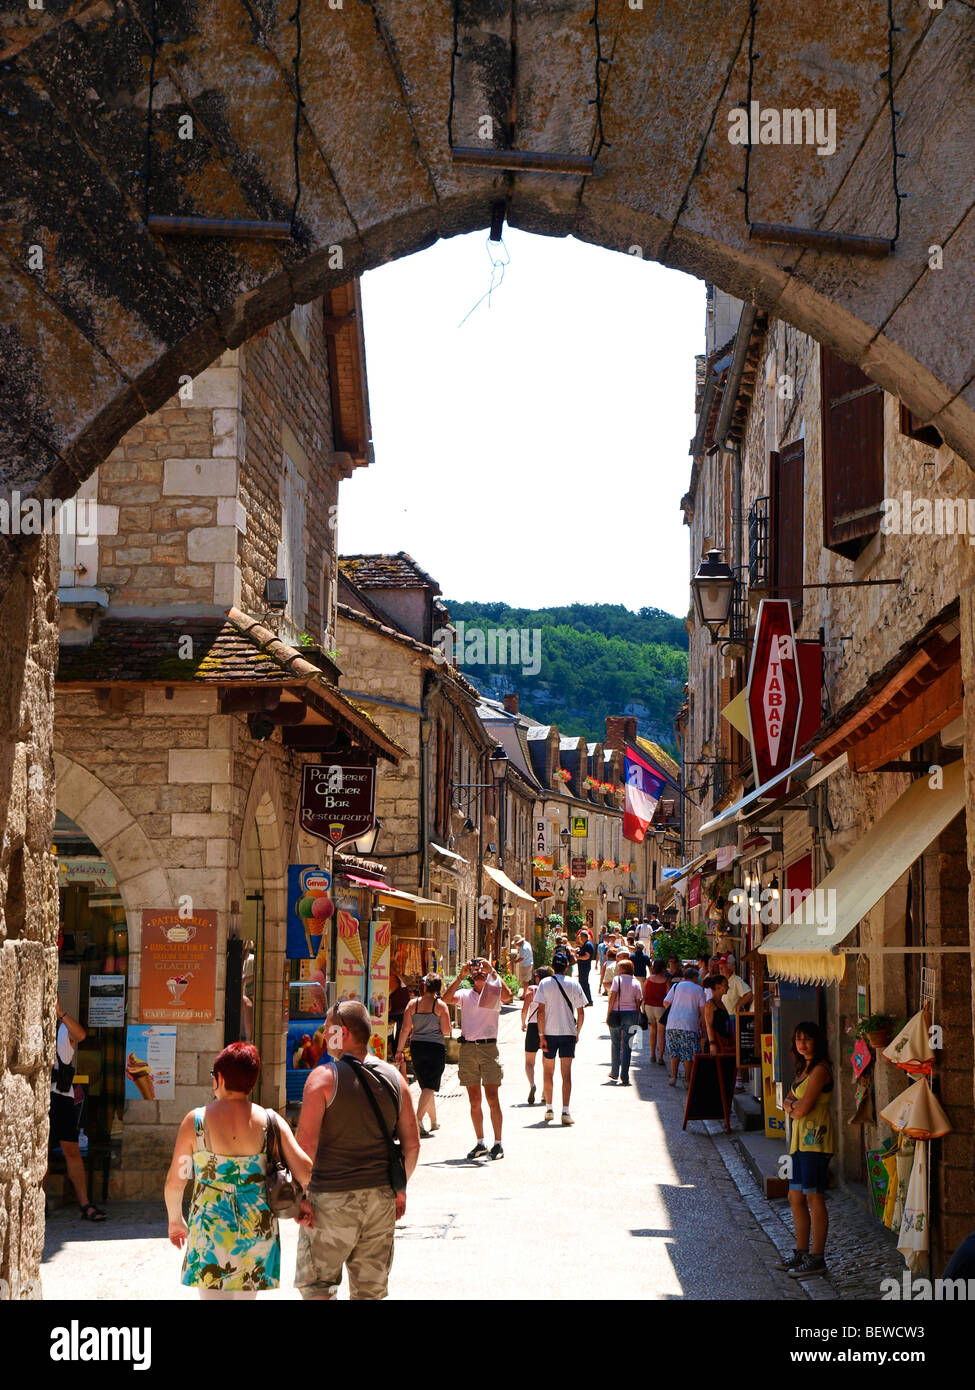 Shops along a lively alley in Rocamadour, Midi Pyrenees, France - Stock Image